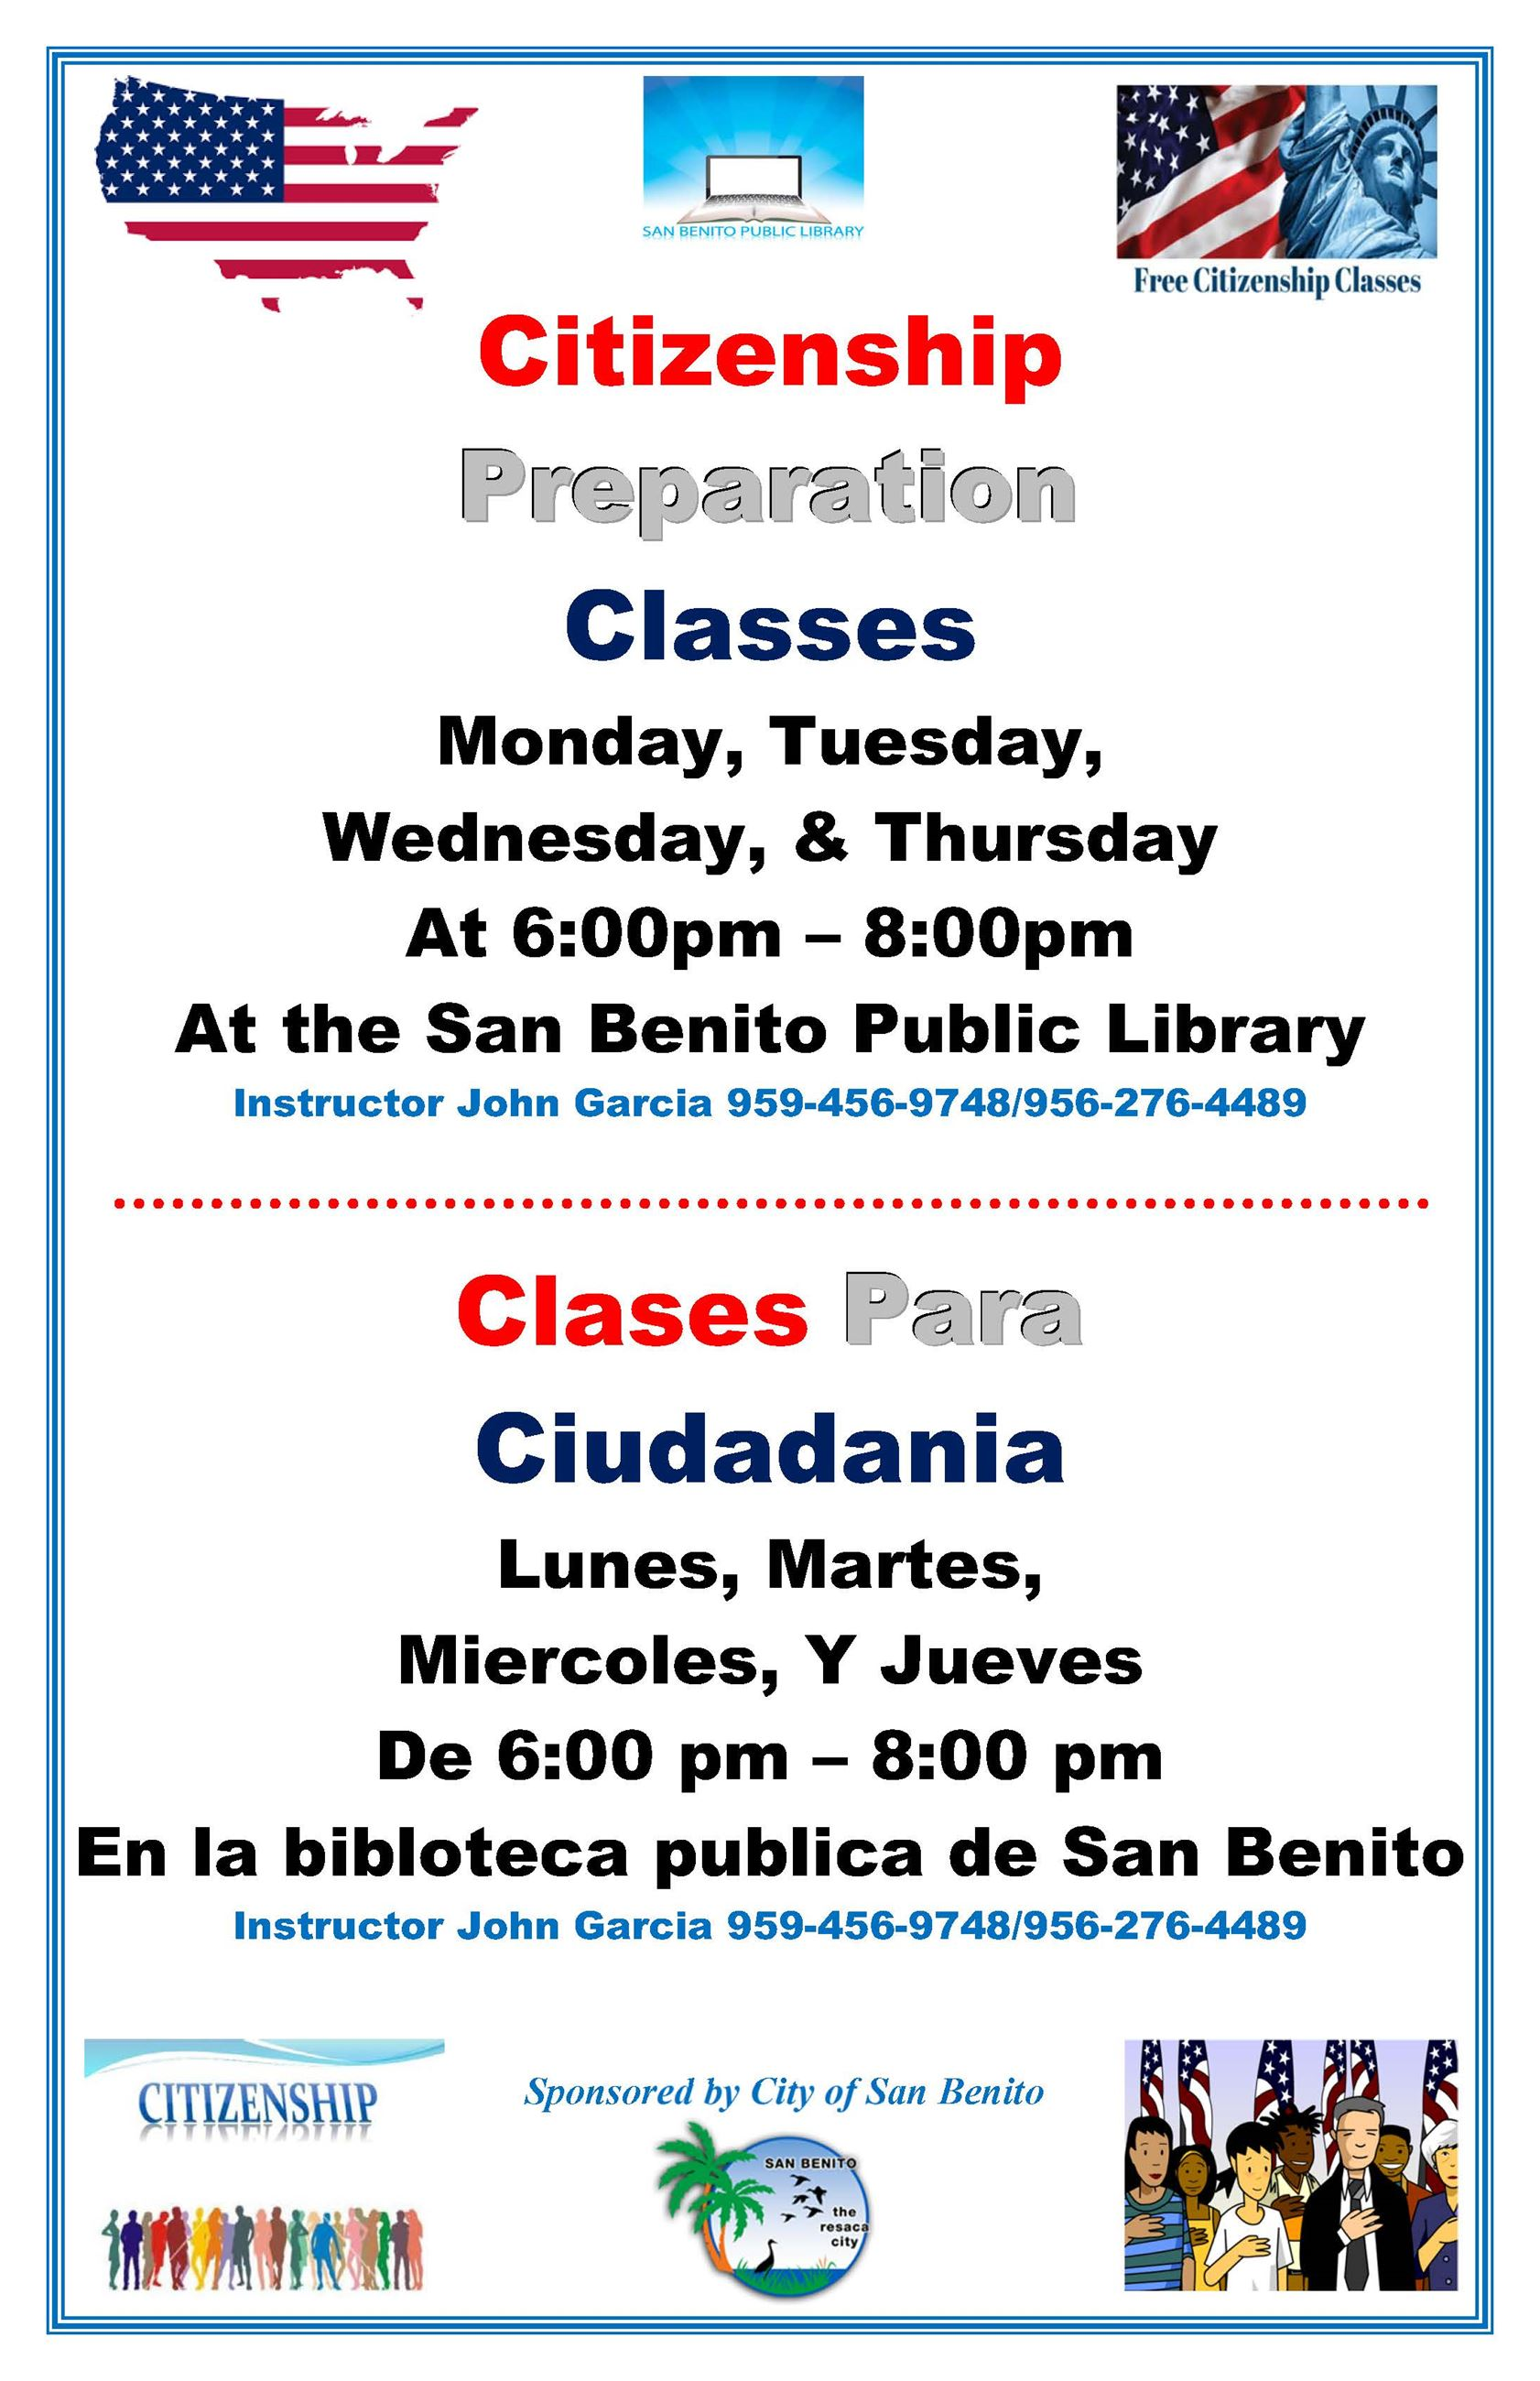 Citizenship Classes Flyer 2019